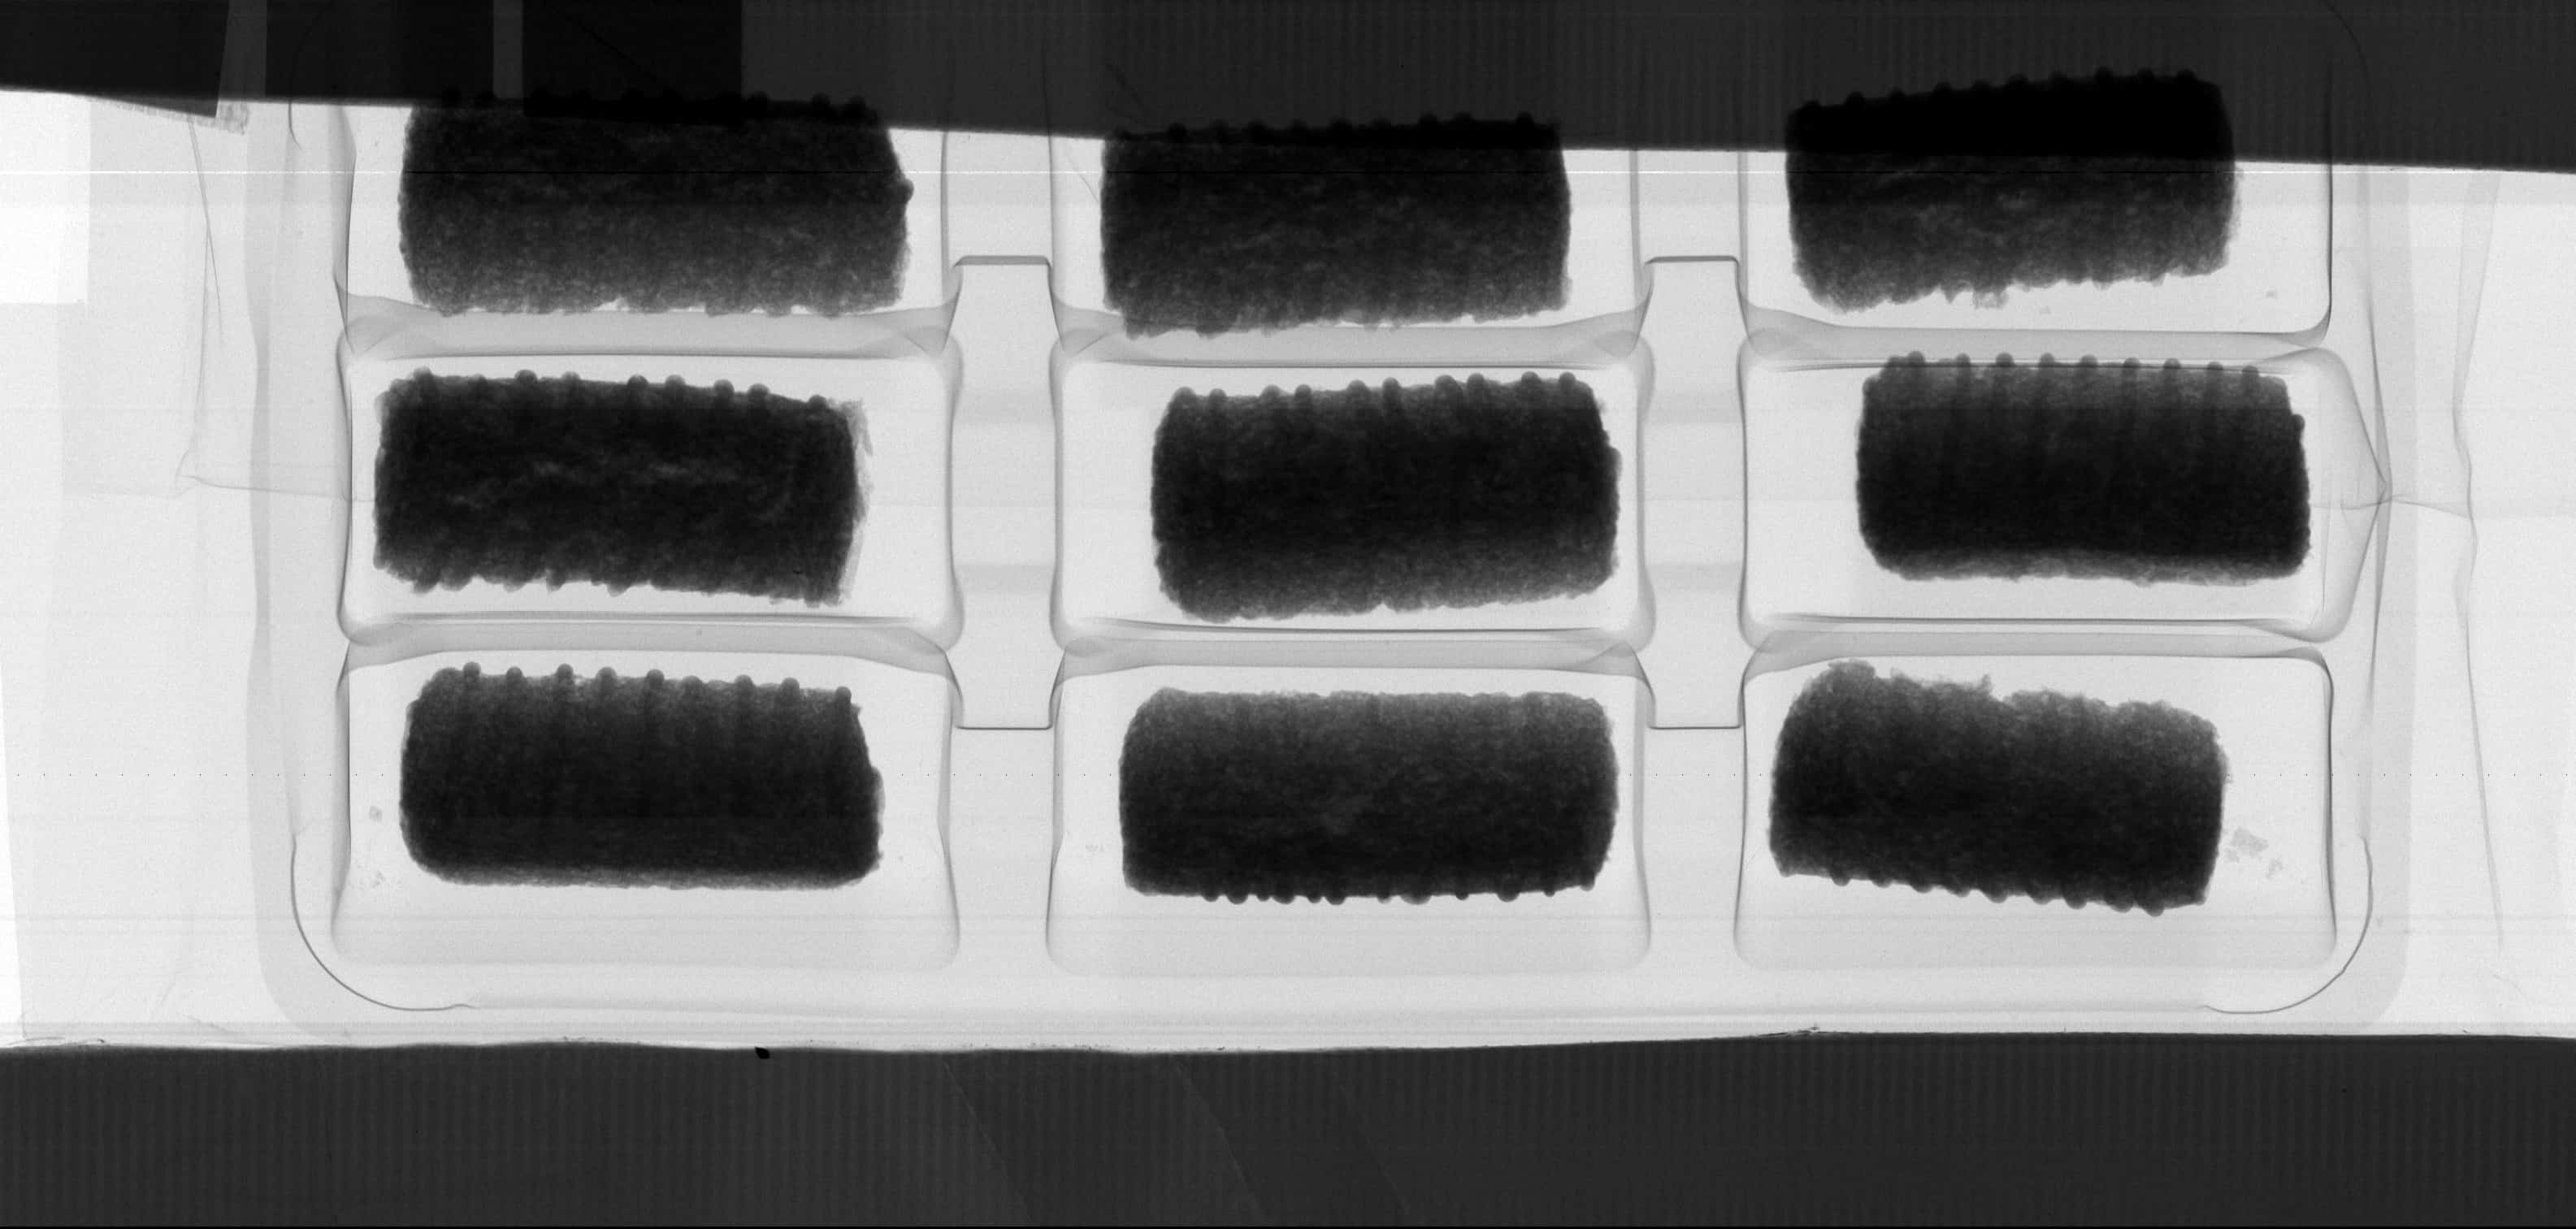 X-ray inspection of bakery products – product & process control 6